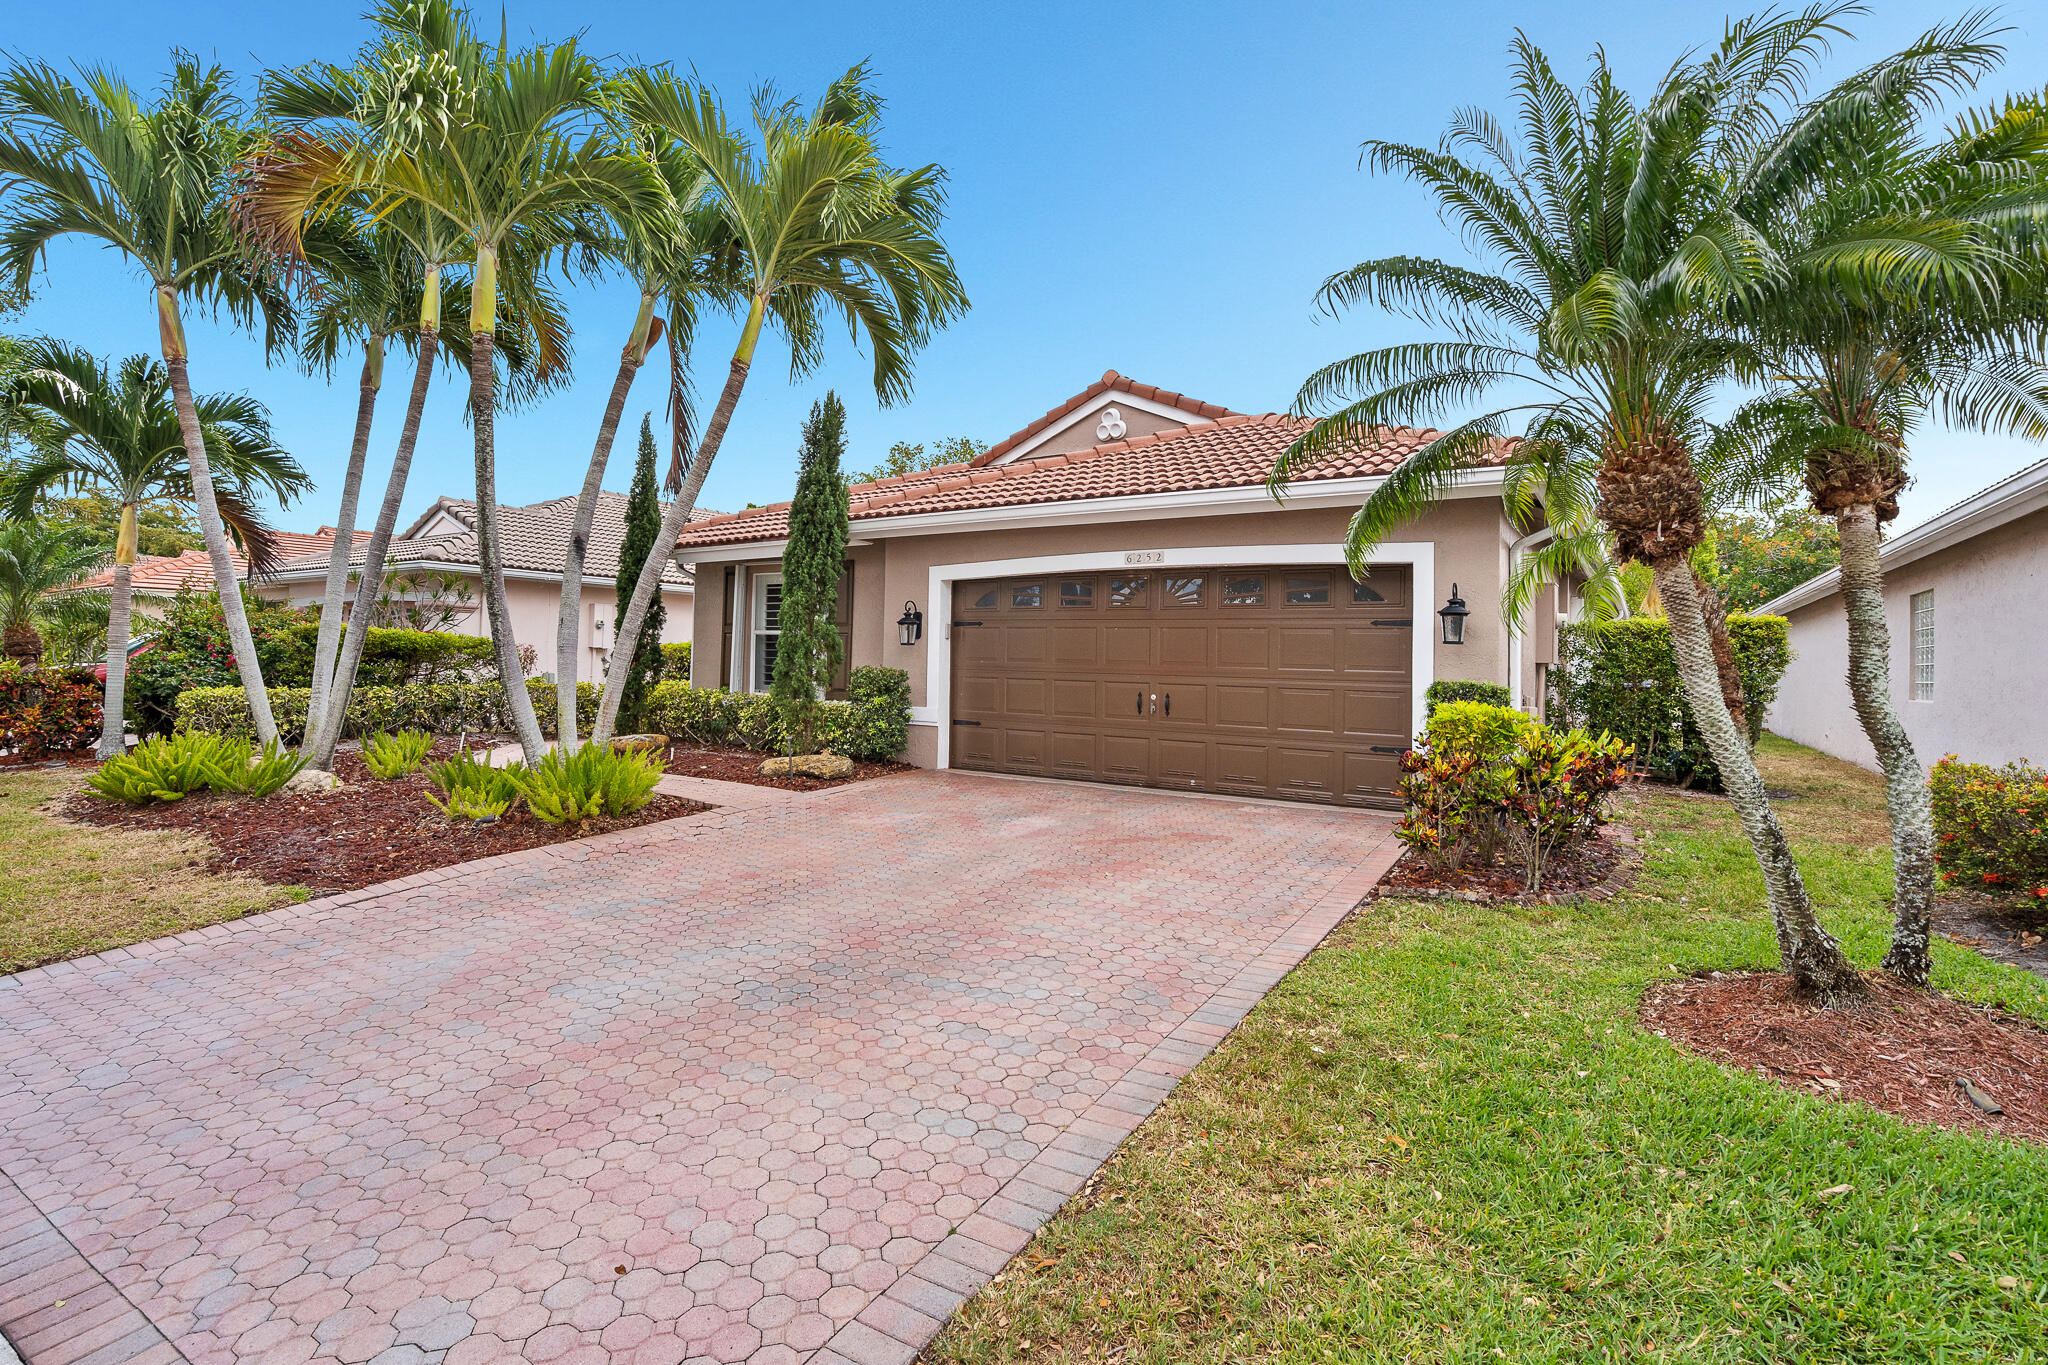 Home for sale in Golfview Village Lake Worth Florida